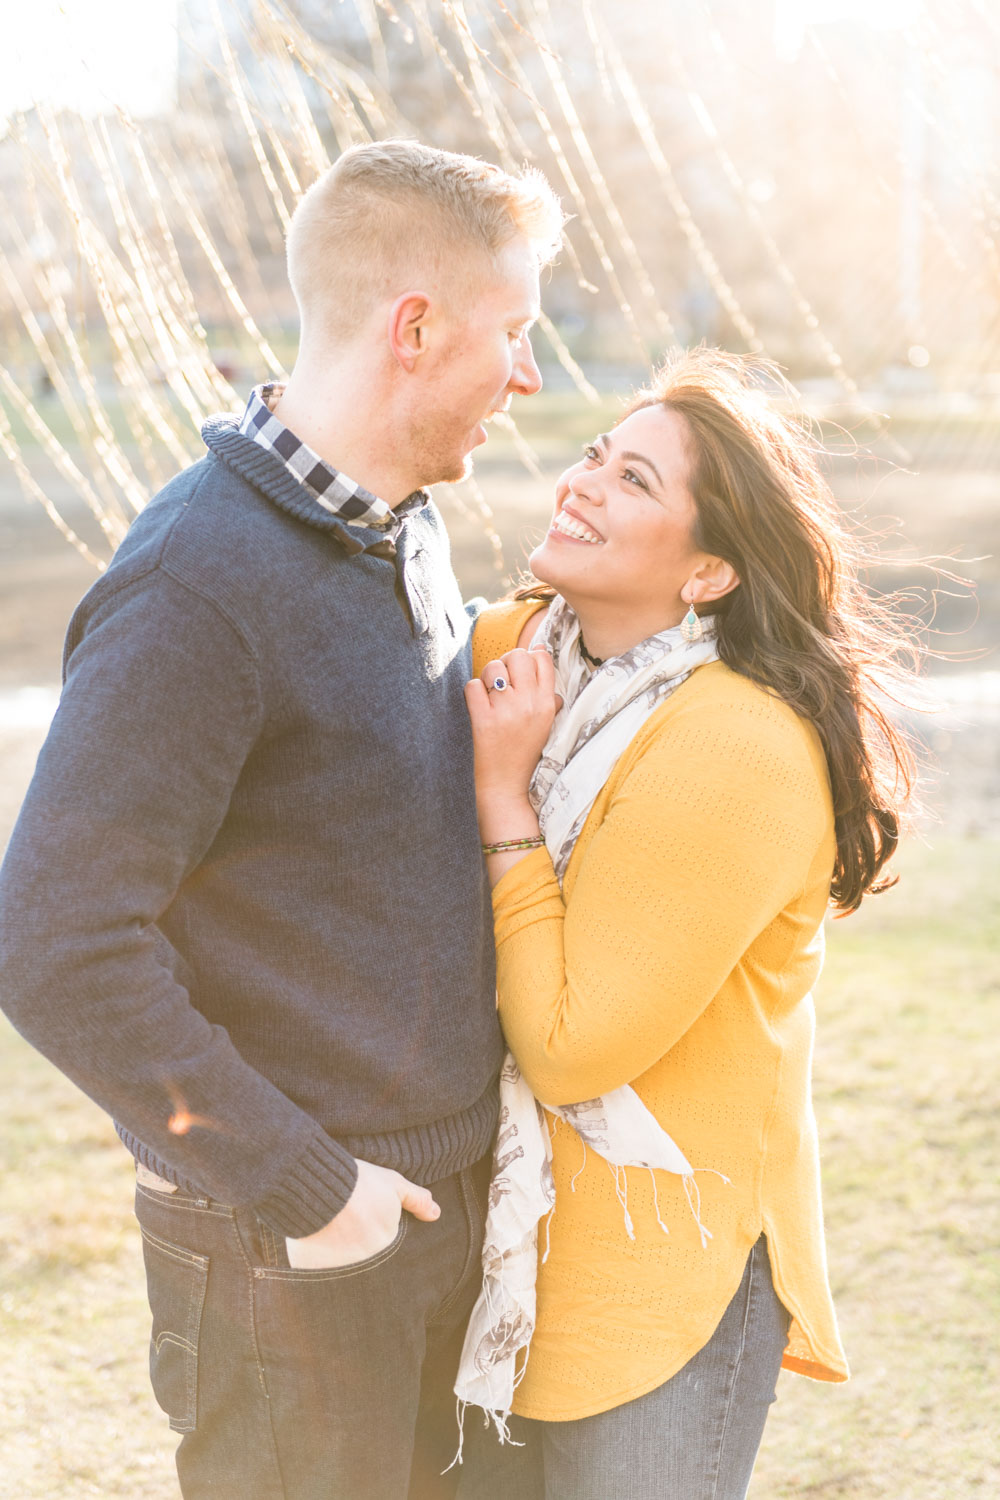 Andrea + Scott | Dog Lovers Boston Public Garden Casual Spring Sunrise Engagement Session | Boston and New England Engagement Photography | Lorna Stell Photo